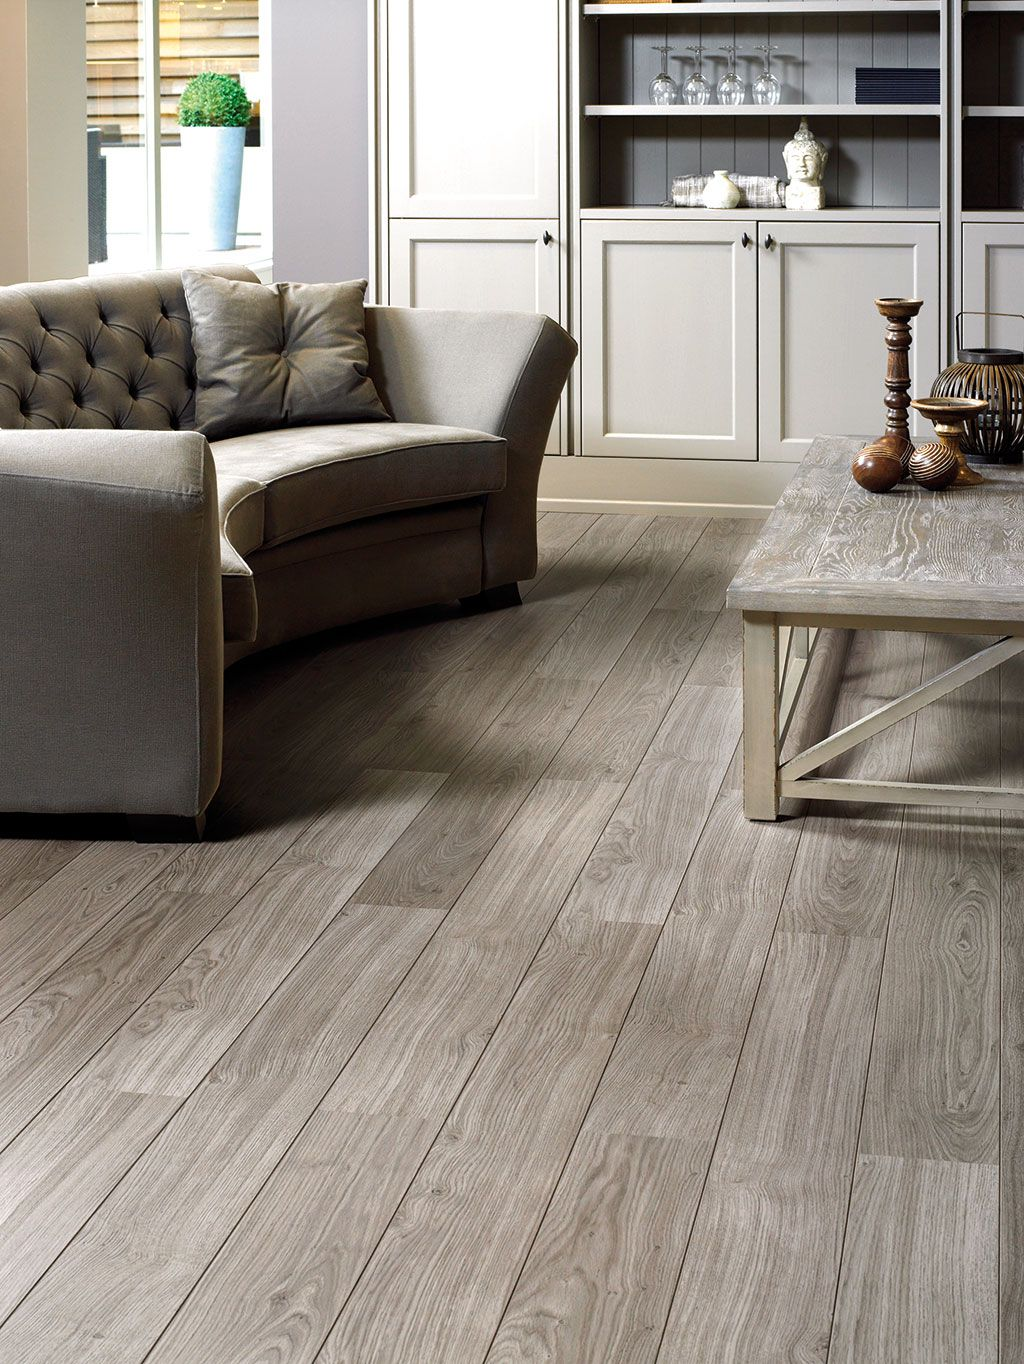 quick-step laminate flooring - perspective 'light grey varnished